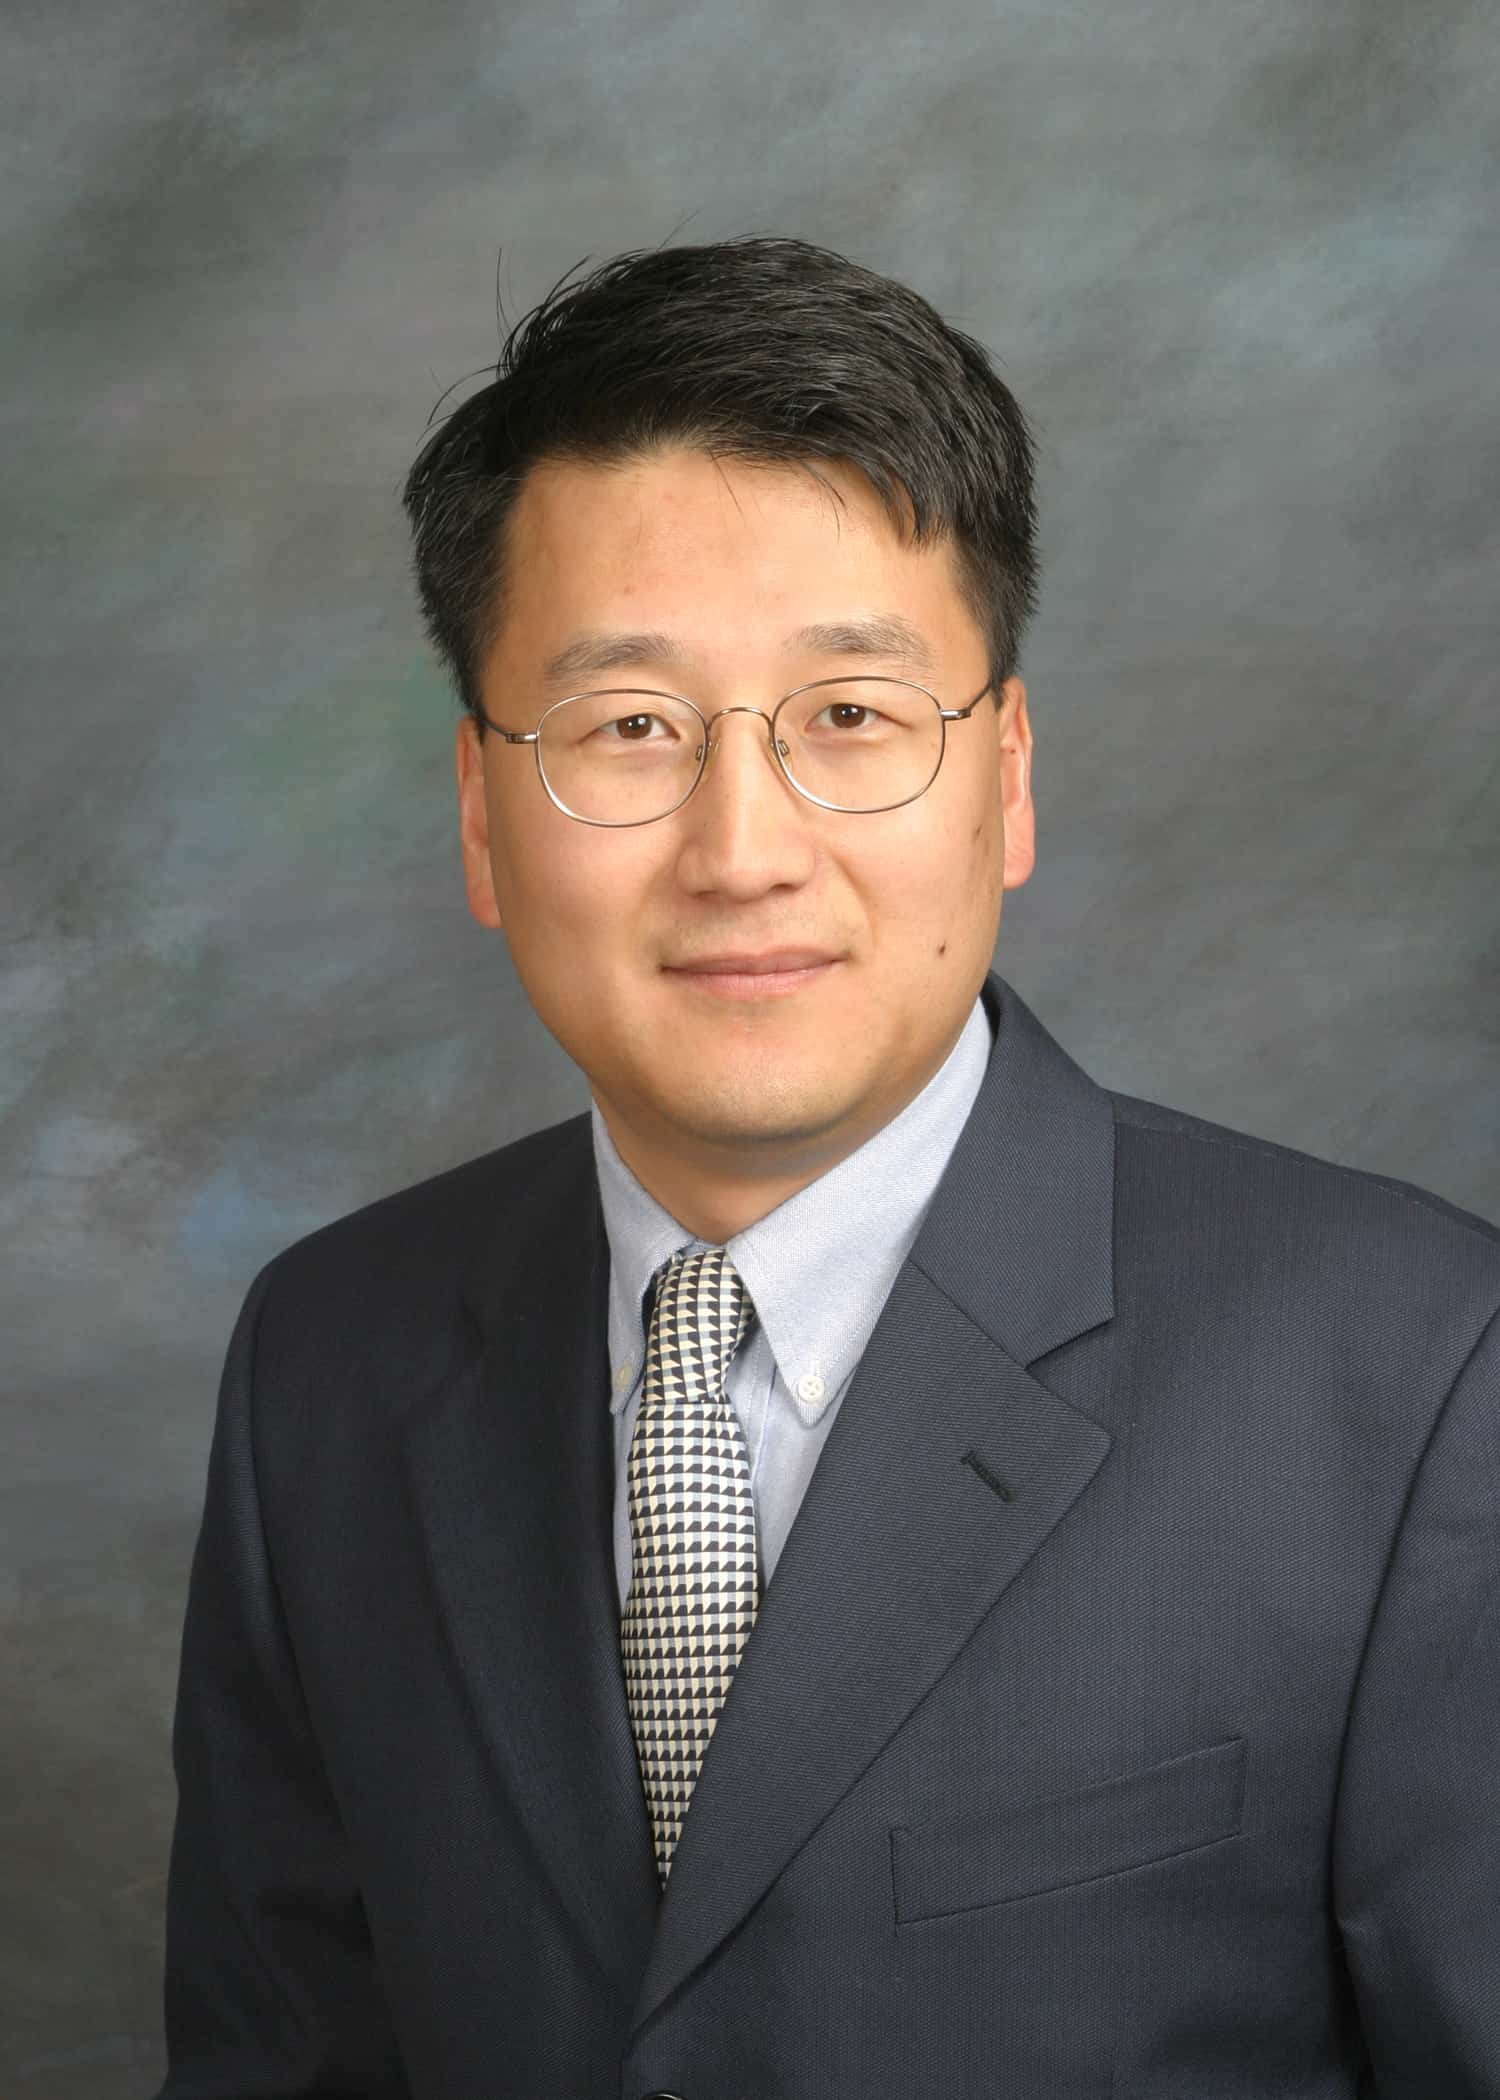 Hongshik Han MD - Headshot Photo